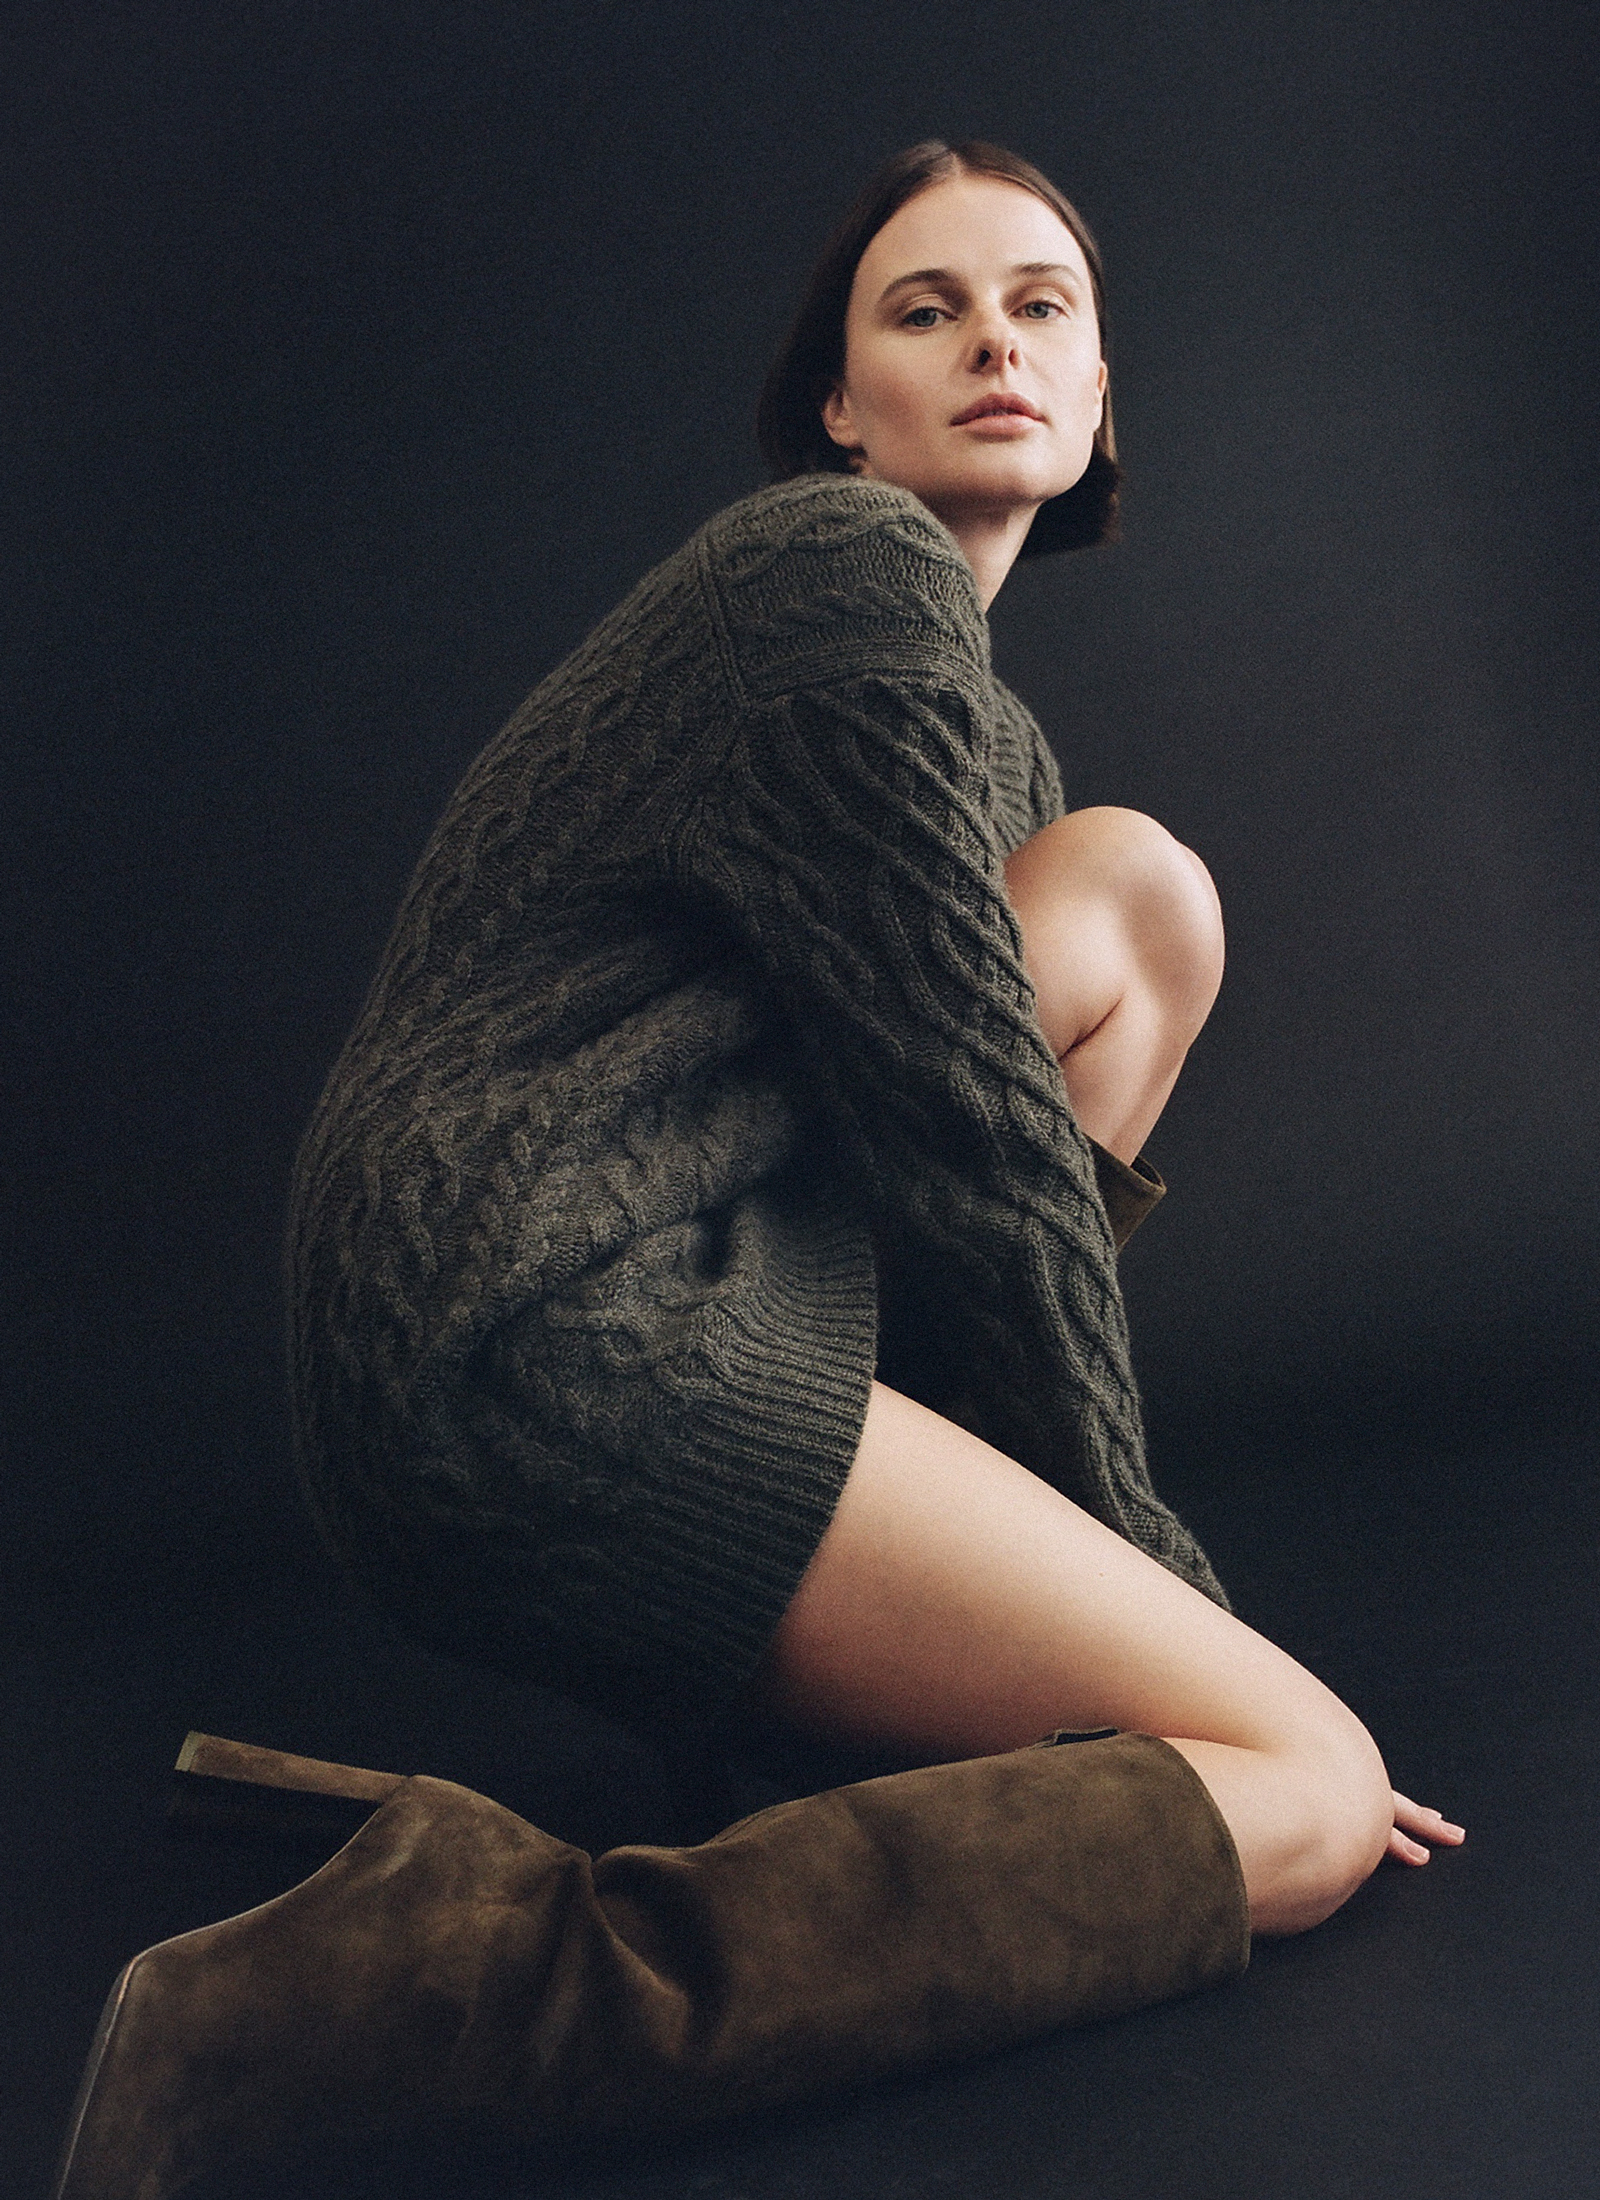 Tall Boot in Suede - Taupe - by Zoe Gherter for Co